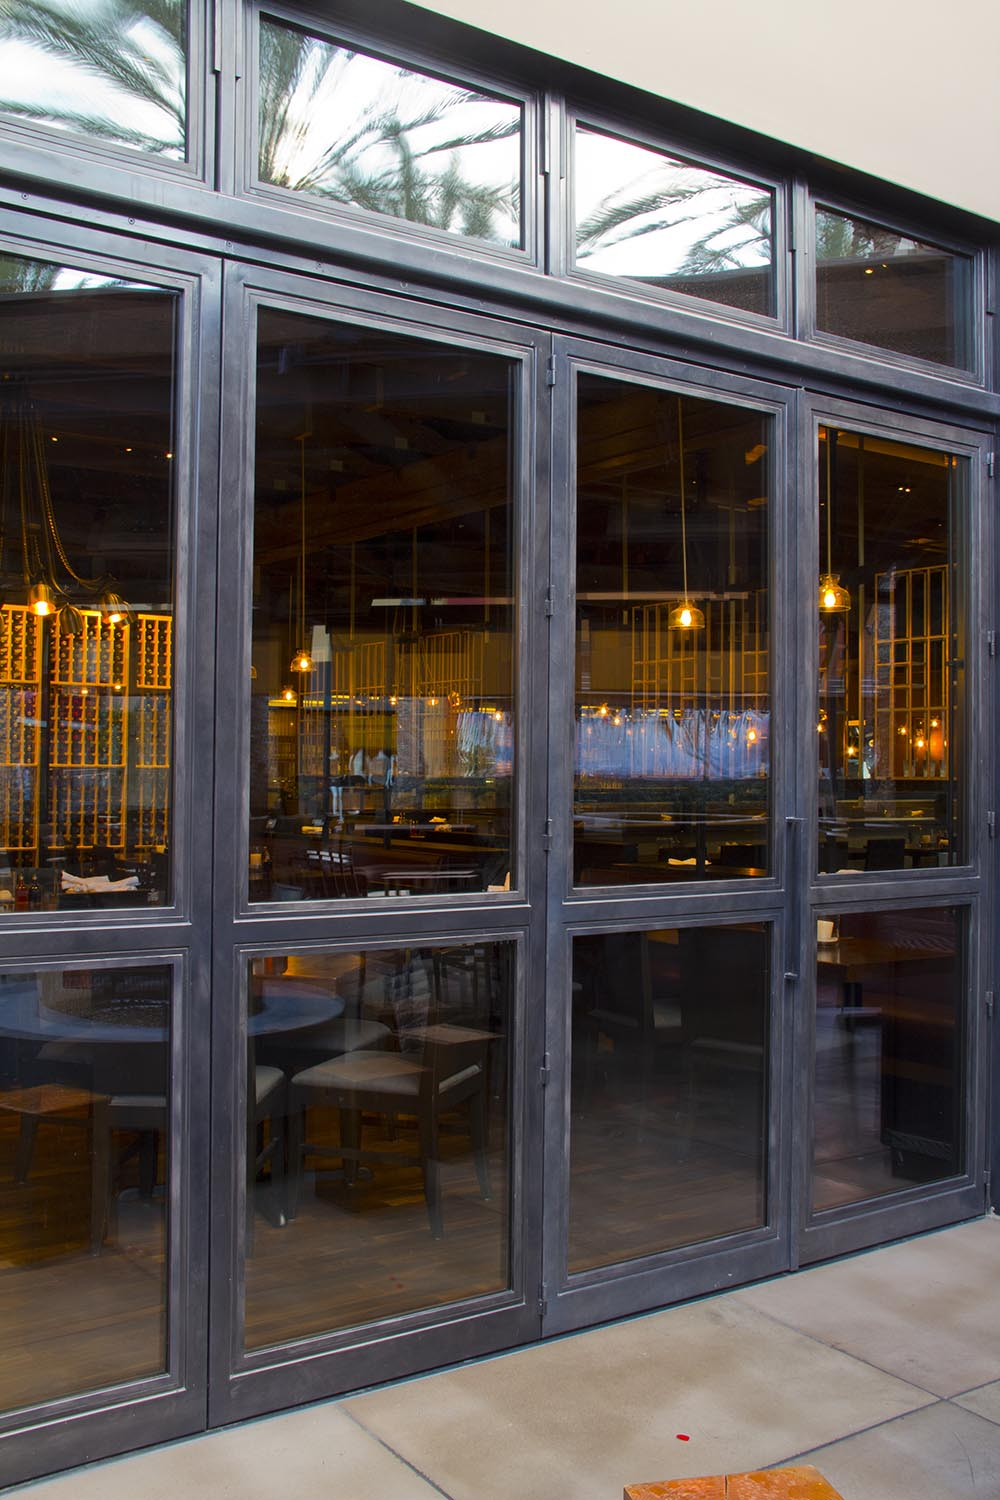 custom steel doors, custom steel windows, thermally broken, nfrc, steel doors in southern california, steel doors in new york, steel windows in new york, restaurants, riviera bronze